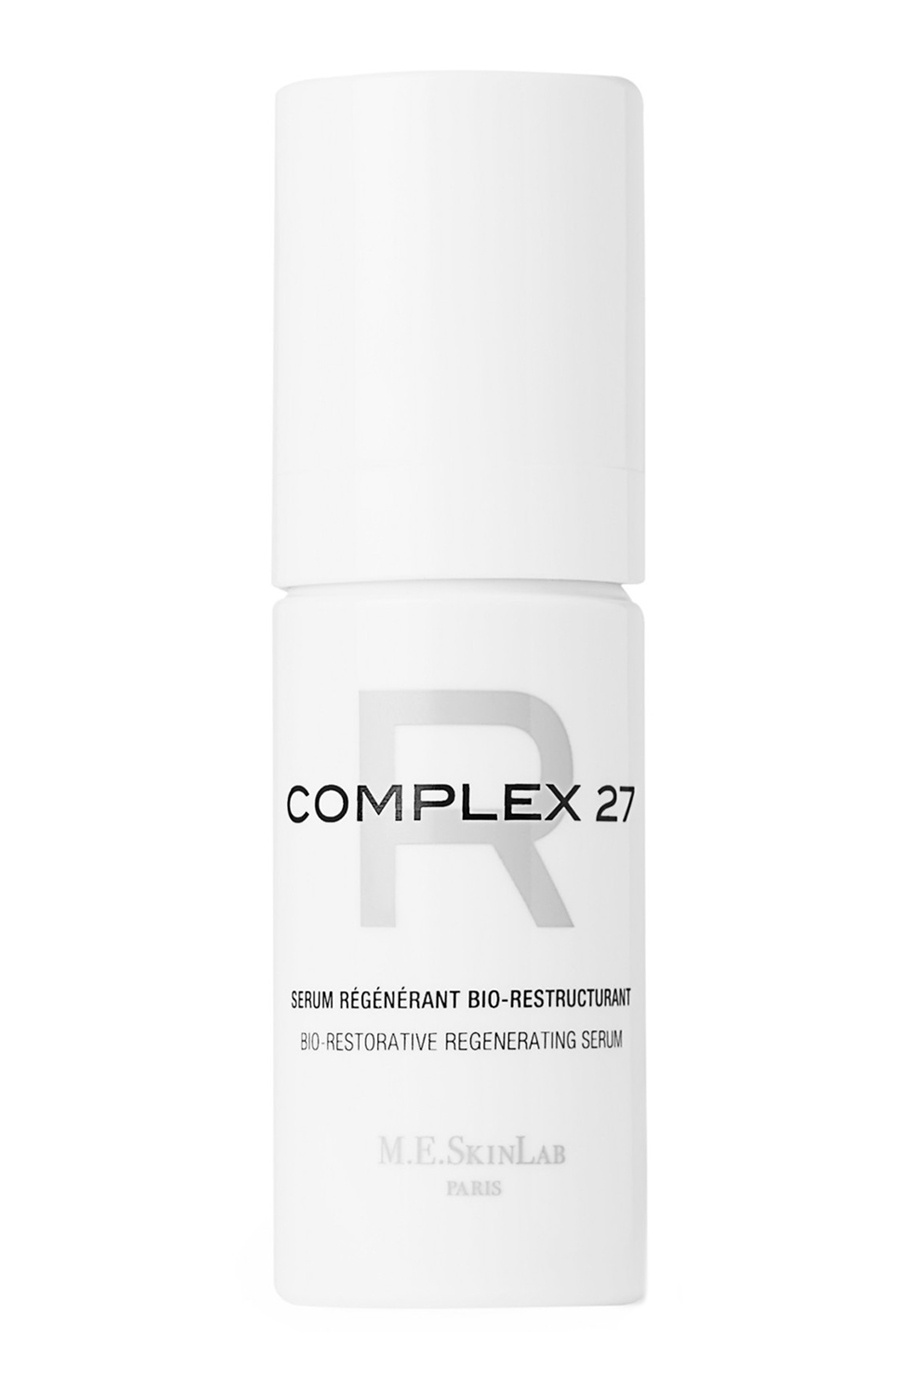 Сыворотка для лица Complex 27 R Bio-Restorative Regenerating 30ml Cosmetics 27 (фото)